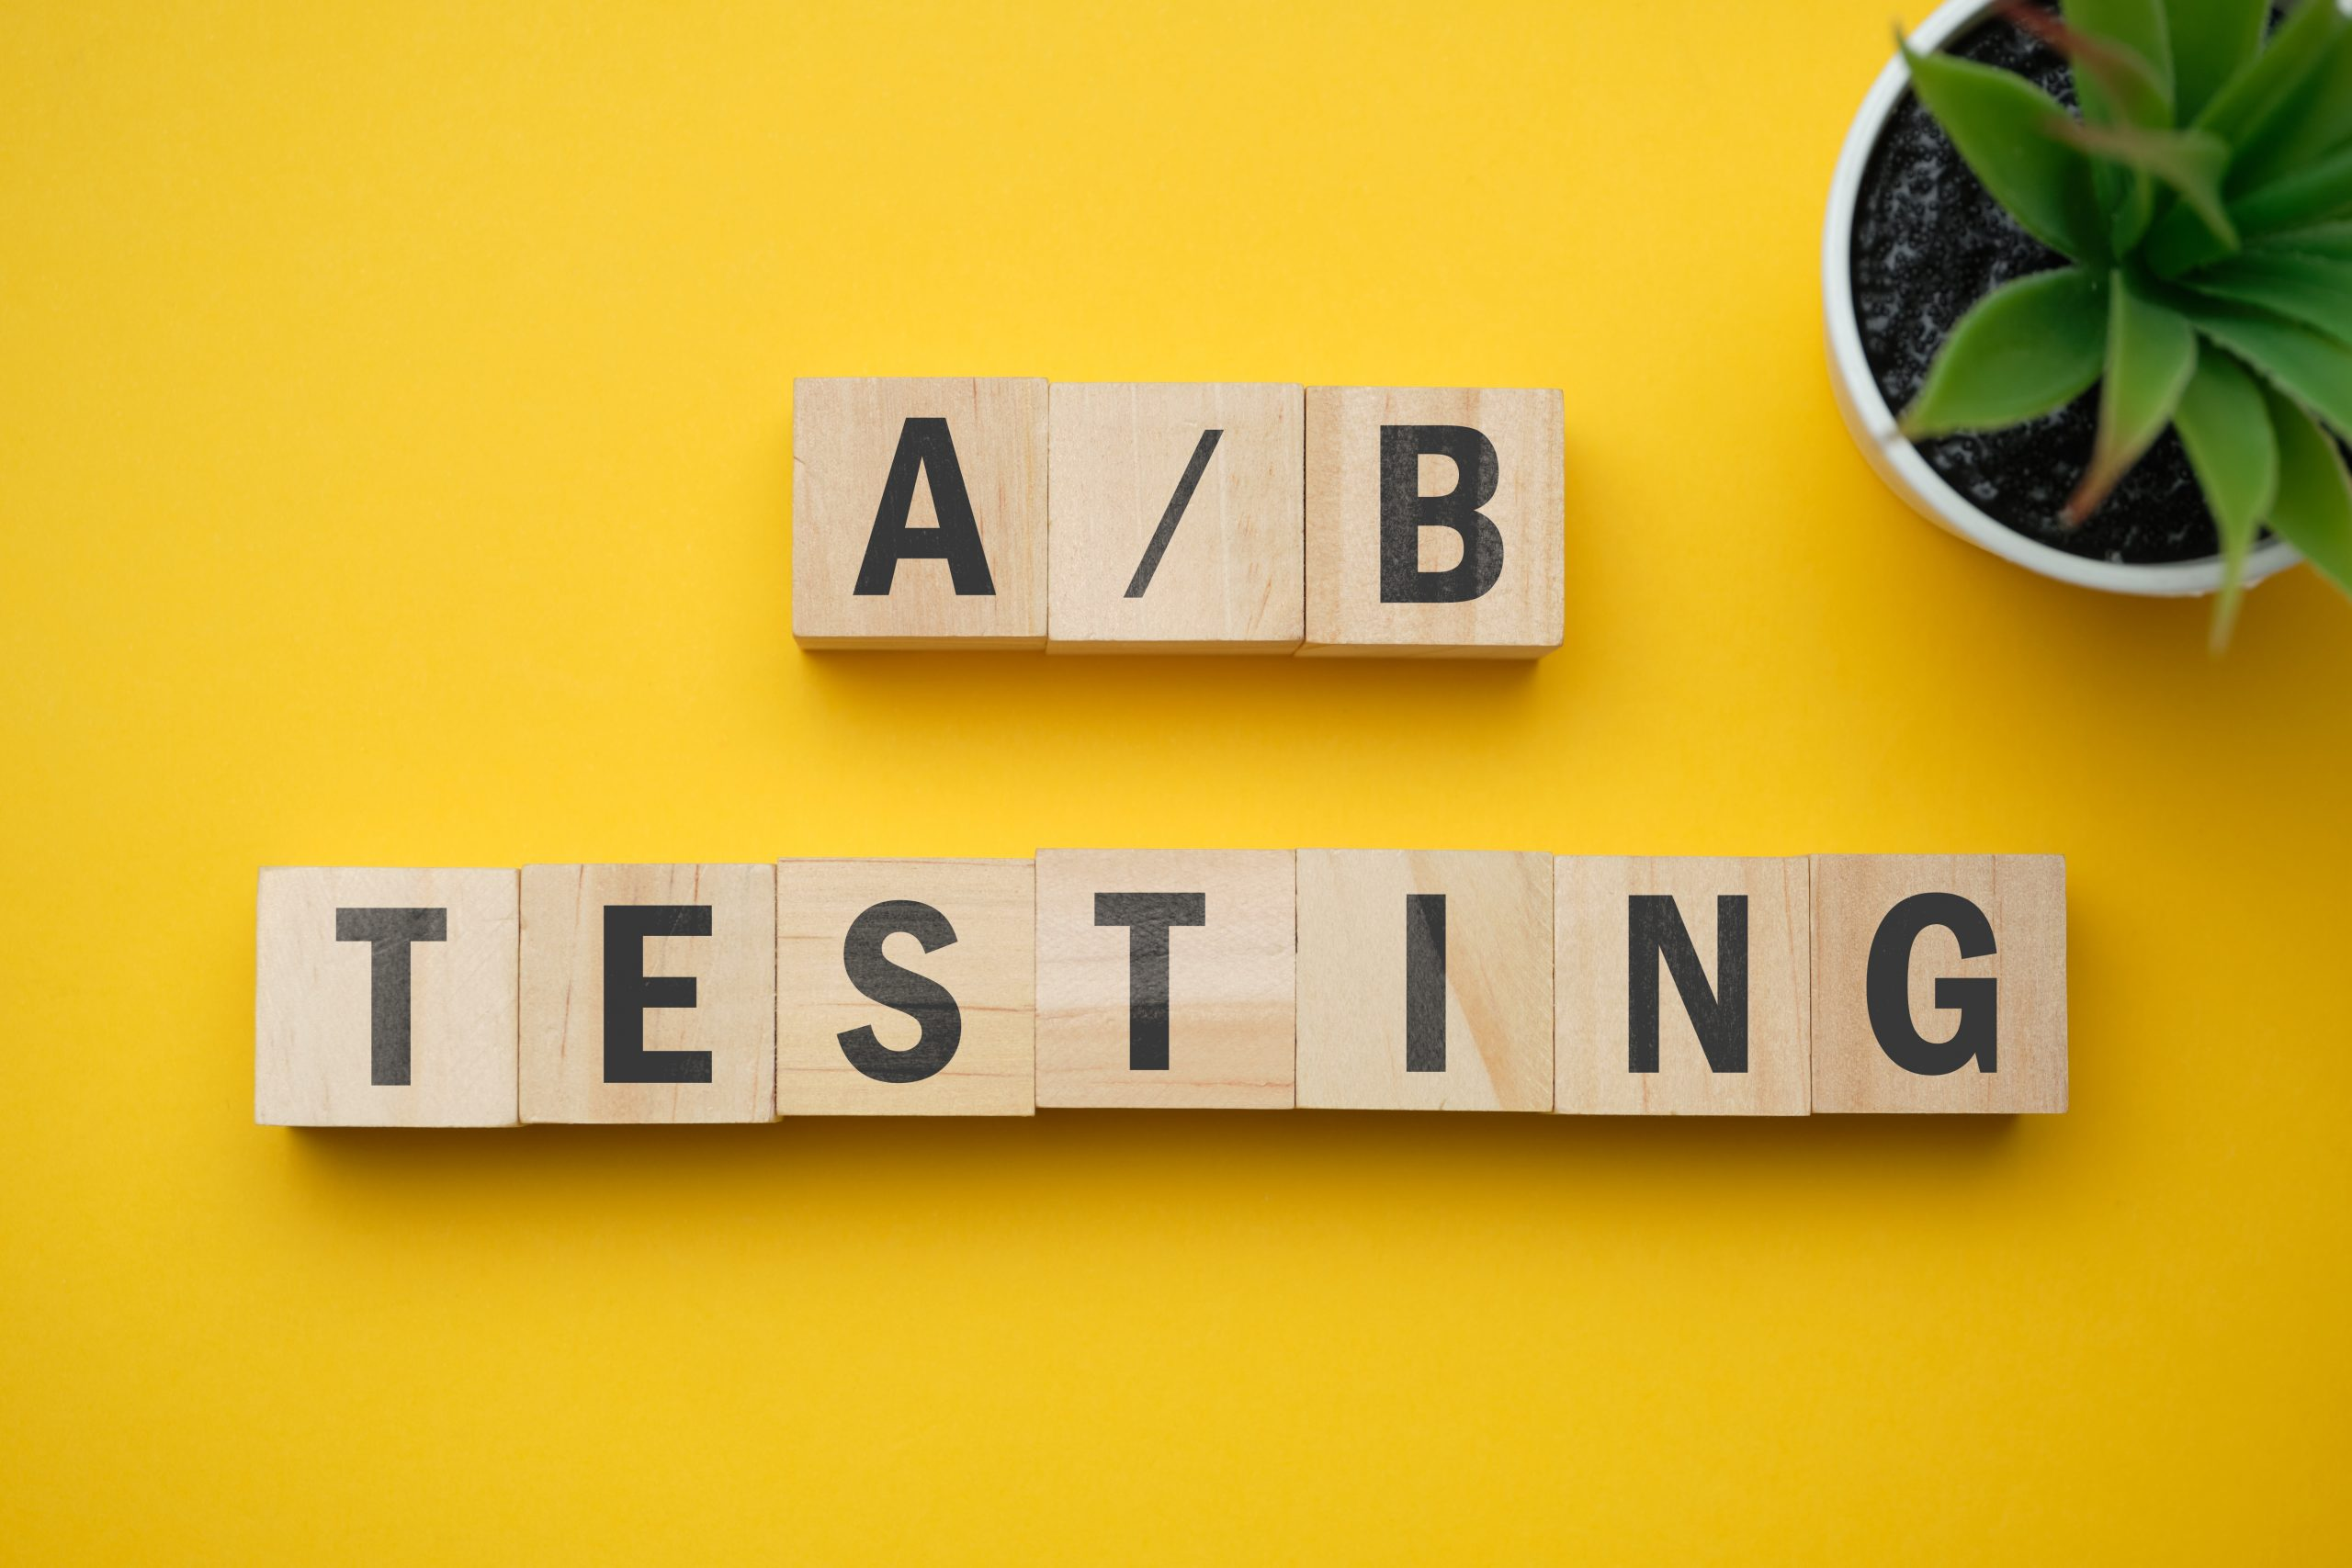 Thumbnail of cubes spelling A/B testing